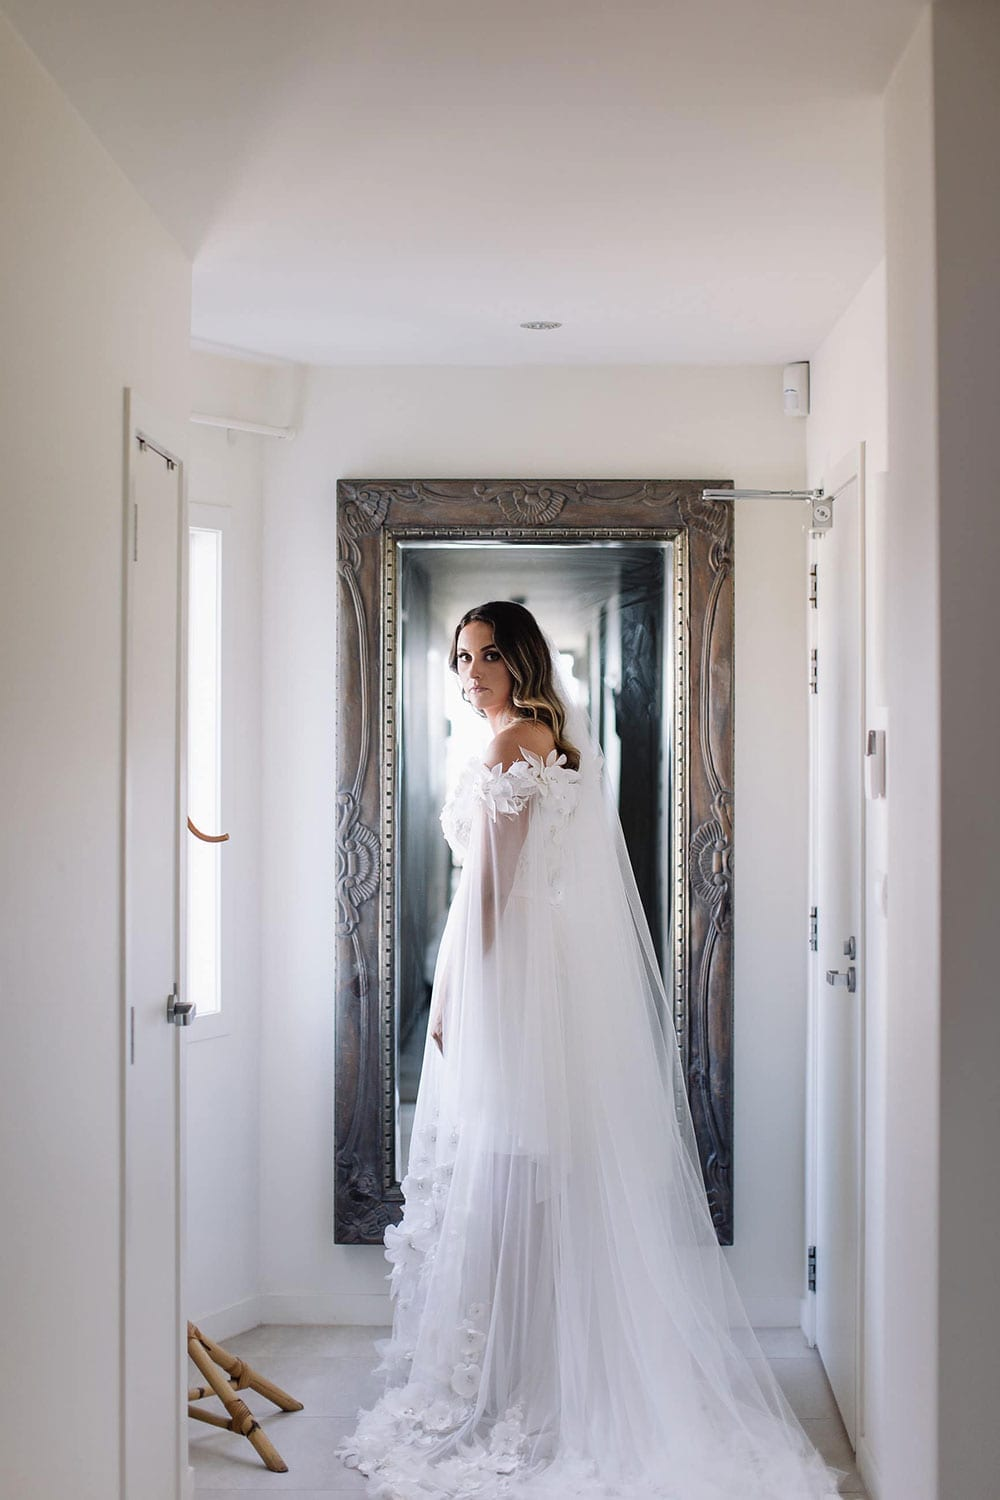 Real Weddings | Vinka Design | Real Brides Wearing Vinka Gowns | Candice and Michael - Candice in hallway with mirror back of bespoke dress detail and train displayed